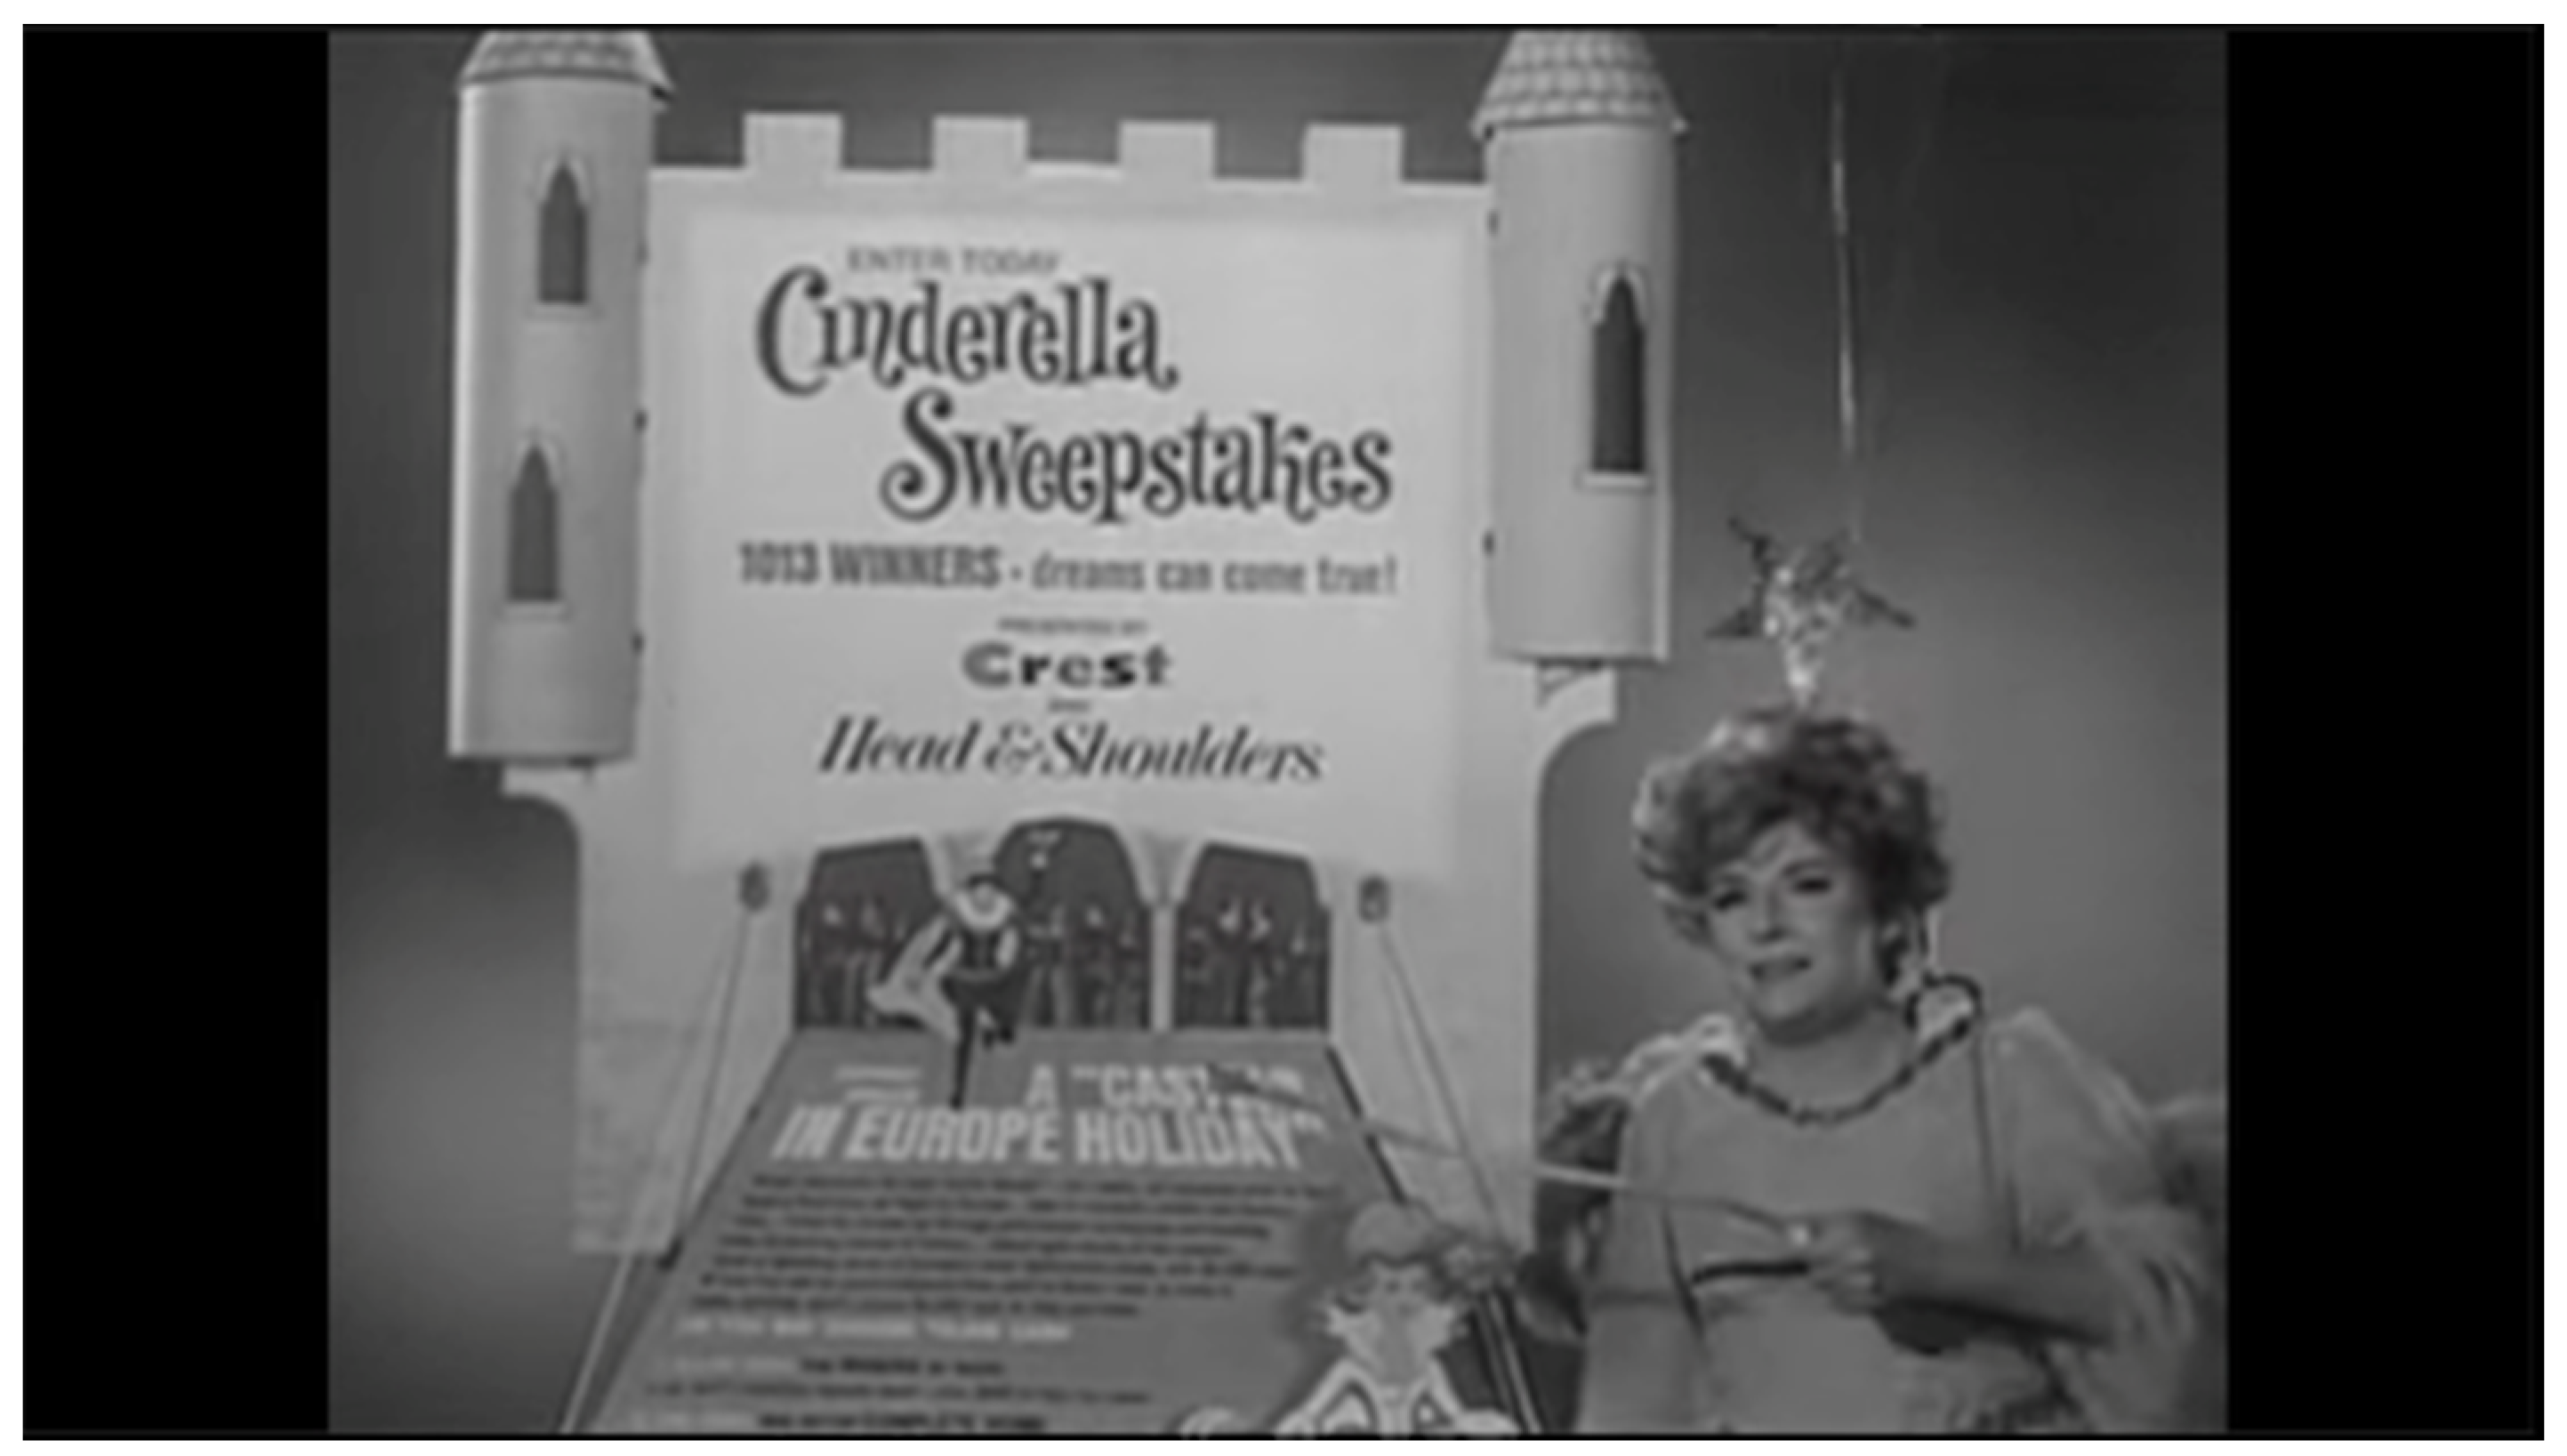 1960s crest cinderella sweepstakes commercial humanities 05 00029 g005 1024